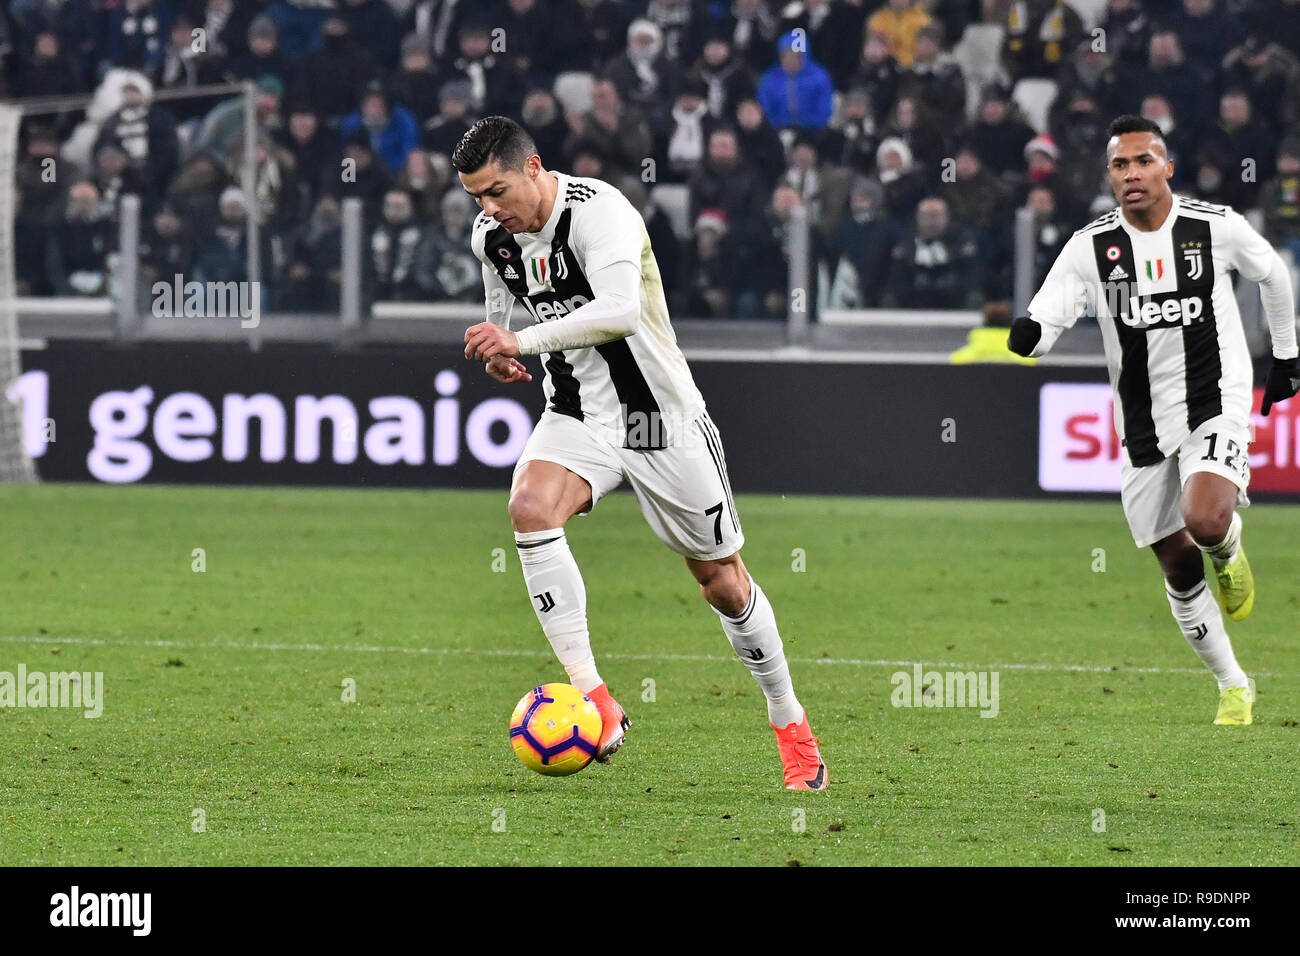 Ronaldo Juve Stock Photos Ronaldo Juve Stock Images Alamy